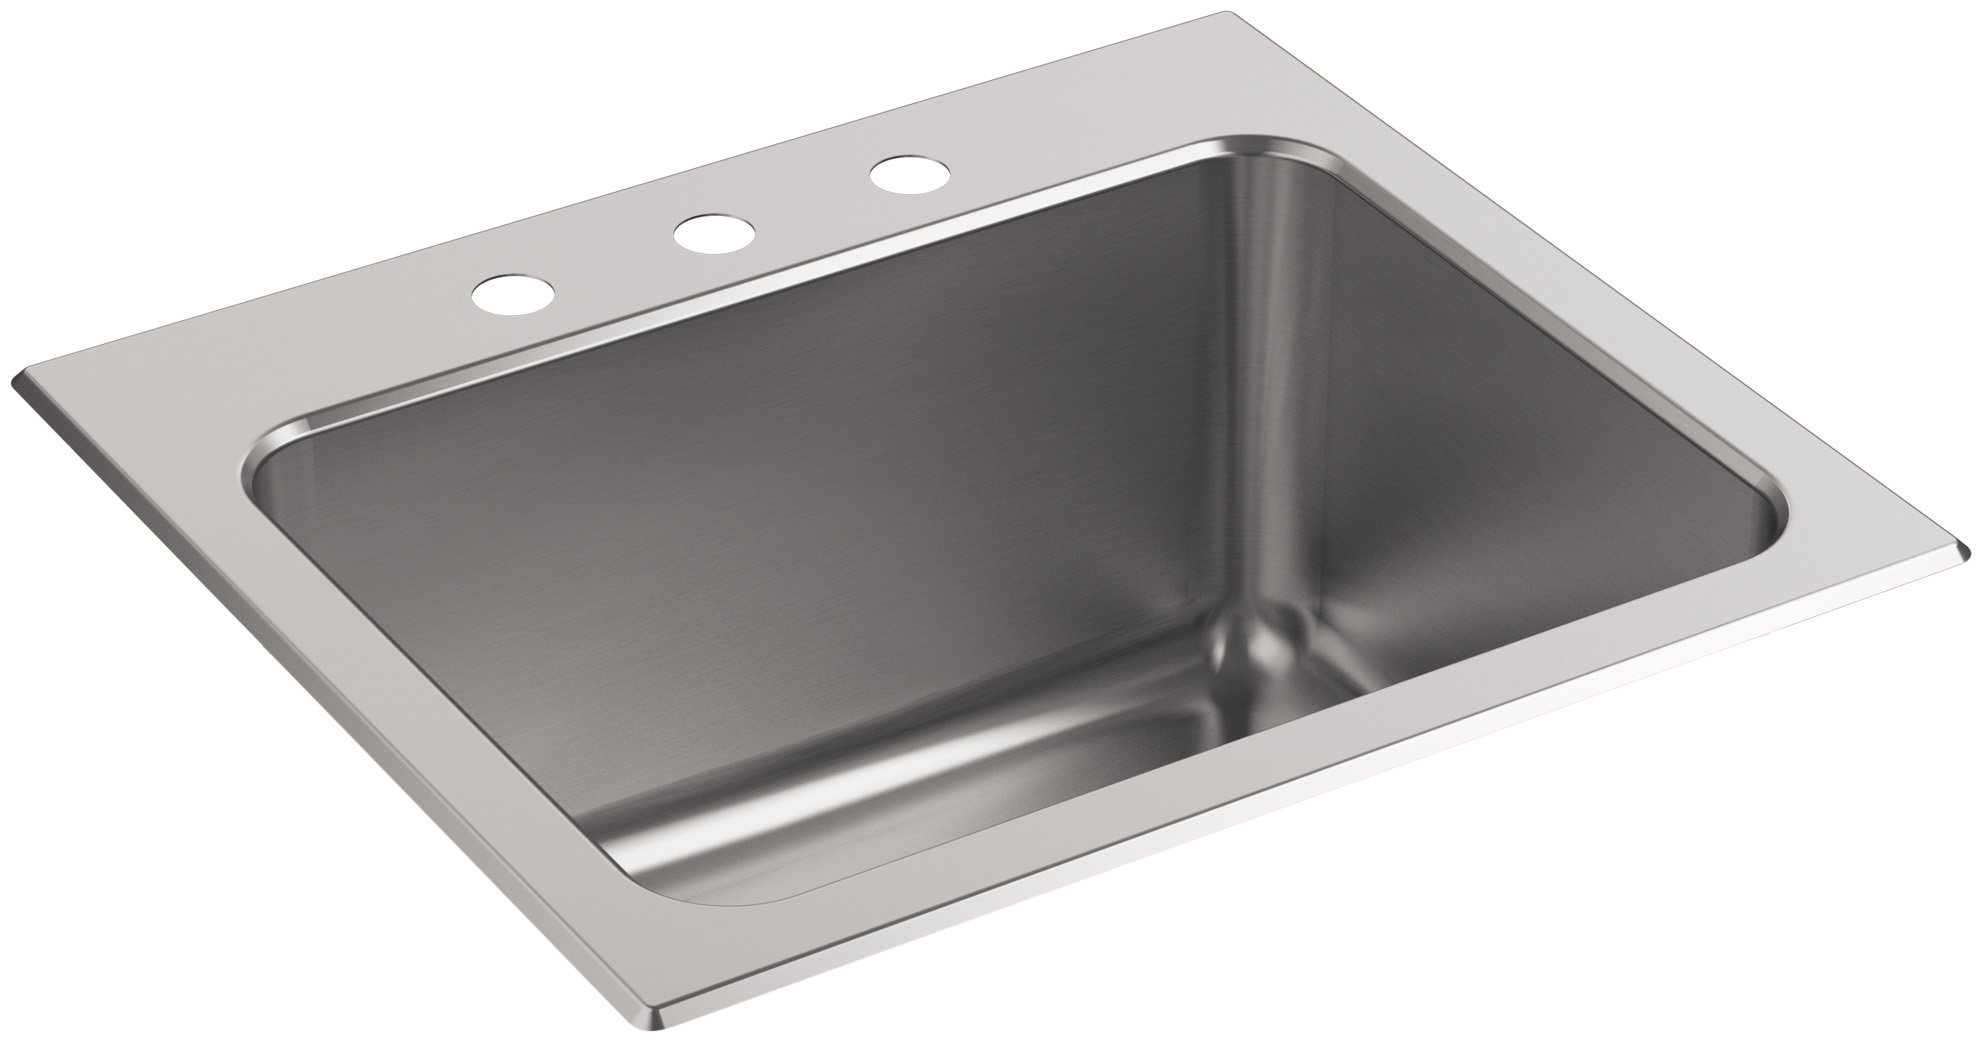 KOHLER K-5798-3-NA Ballad 25-Inch x 22-Inch Top-Mount Utility Sink with 3 Faucet Holes, Stainless Steel by Kohler